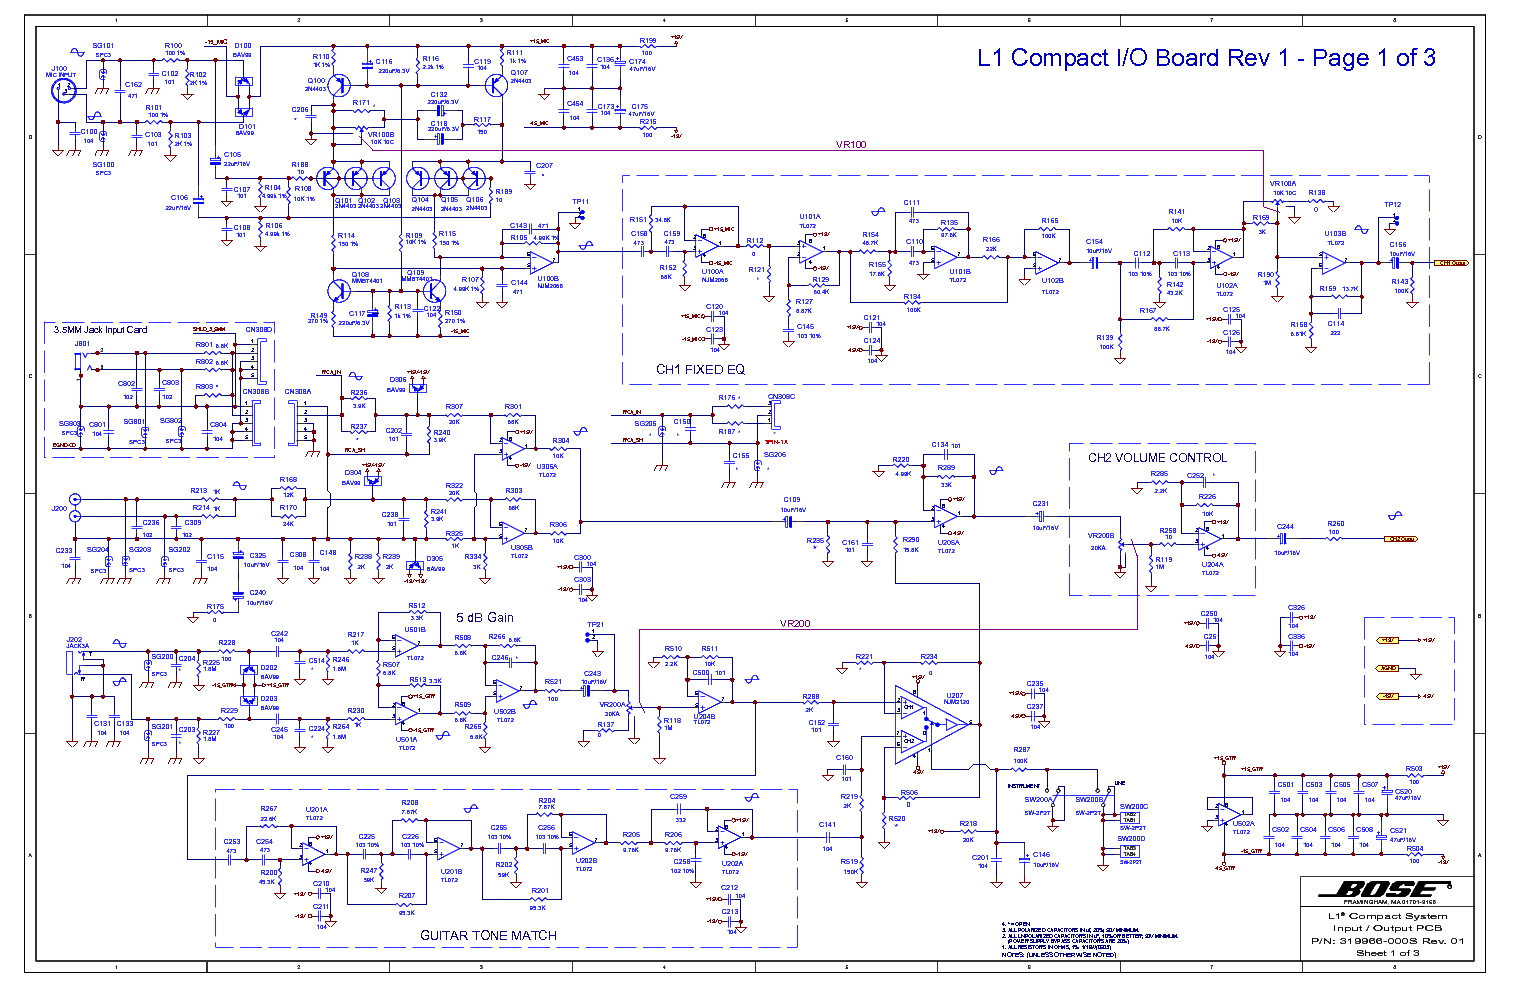 Bose L1 Compact System Service Manual Service Manual Download  Schematics  Eeprom  Repair Info